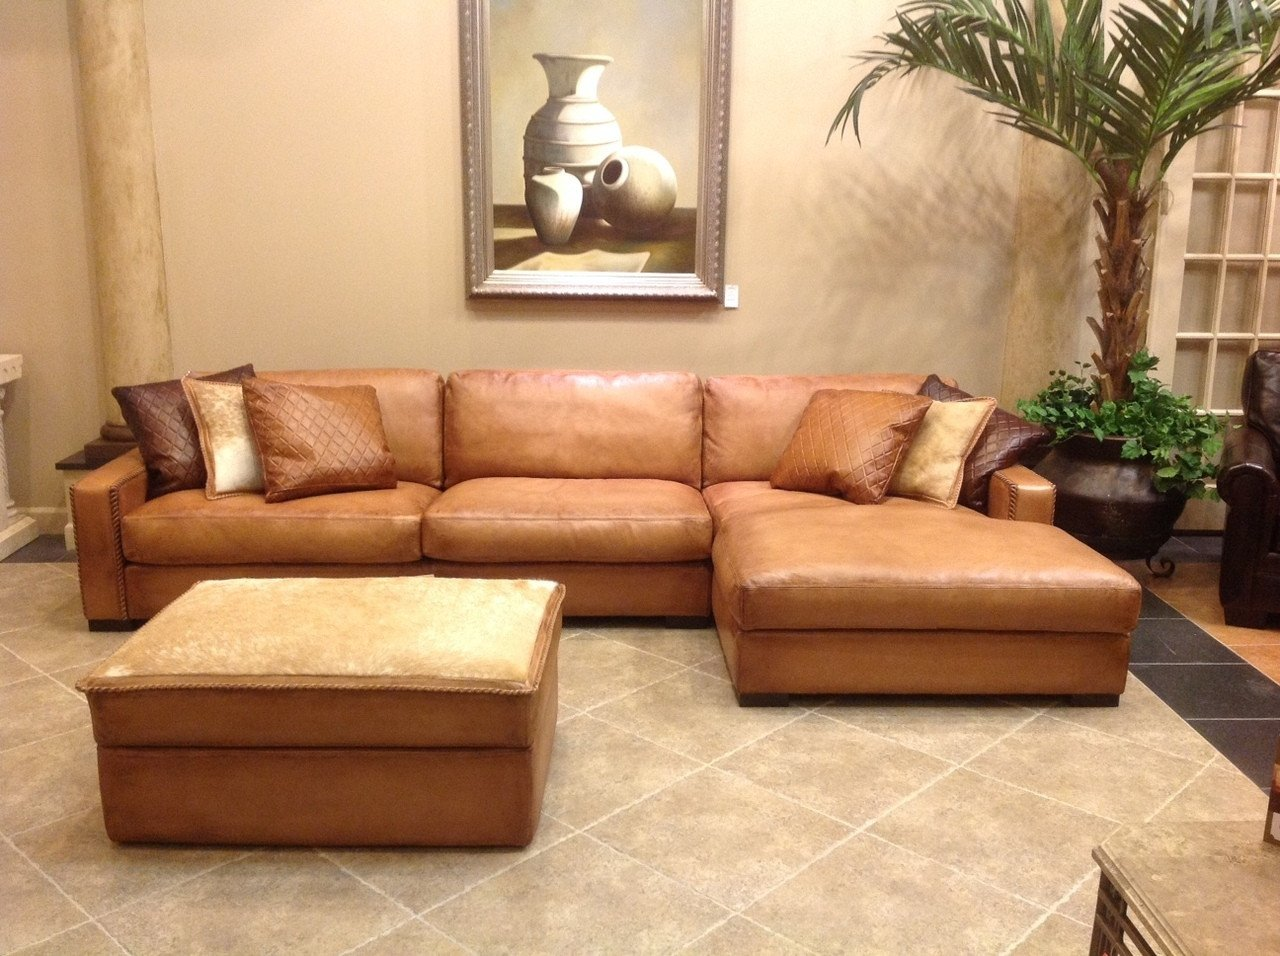 Comfortable Living Room Seating sofa fortable Floor Seating 14 Of 15 S